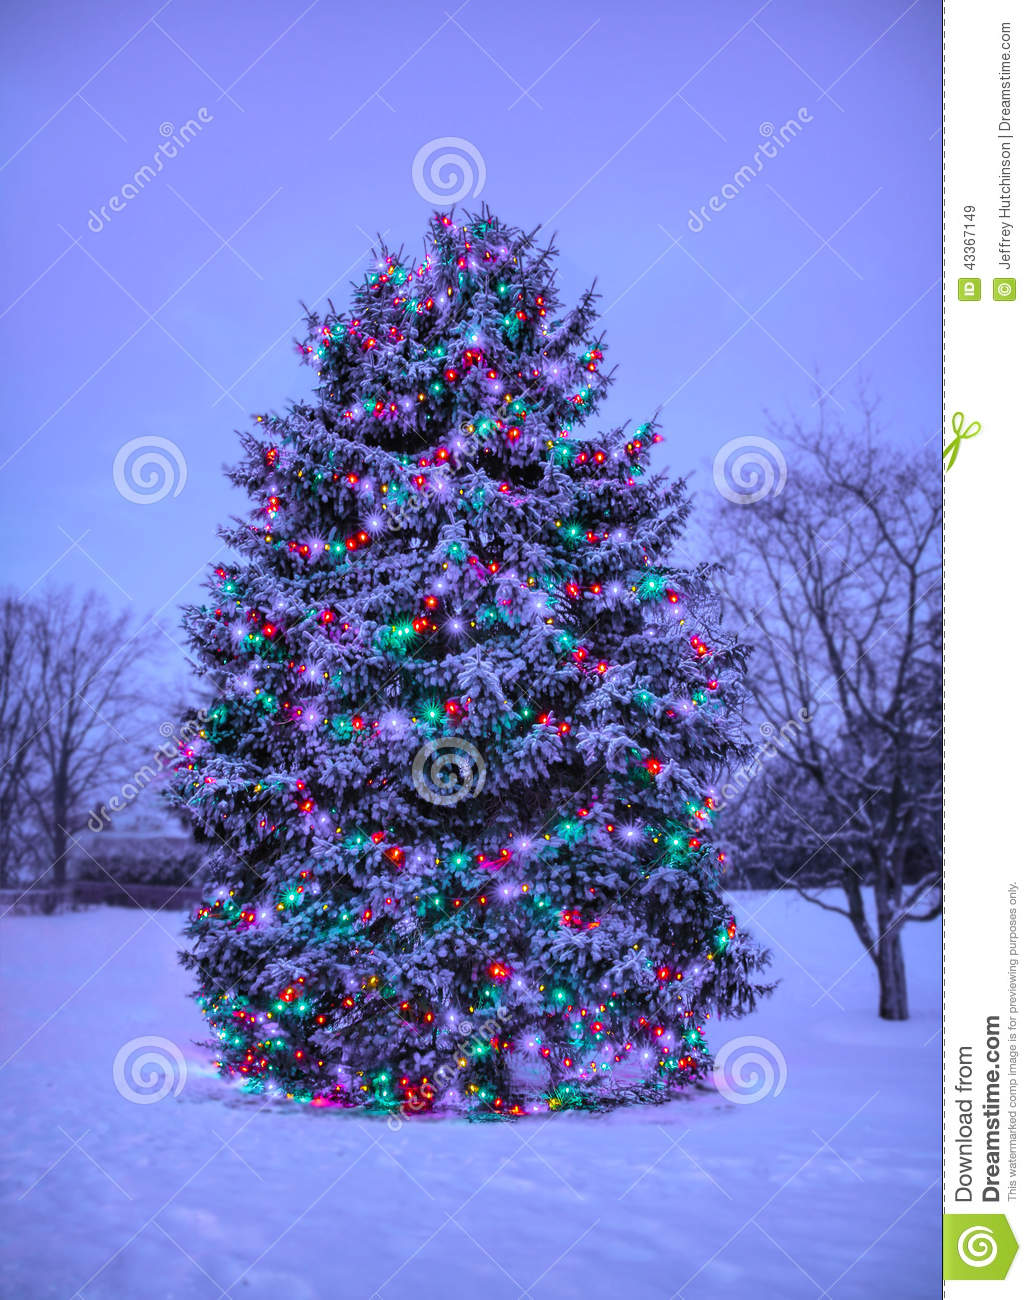 Live Snow Falling Wallpaper For Desktop Christmas Tree With Lights Outside In Snow Stock Image